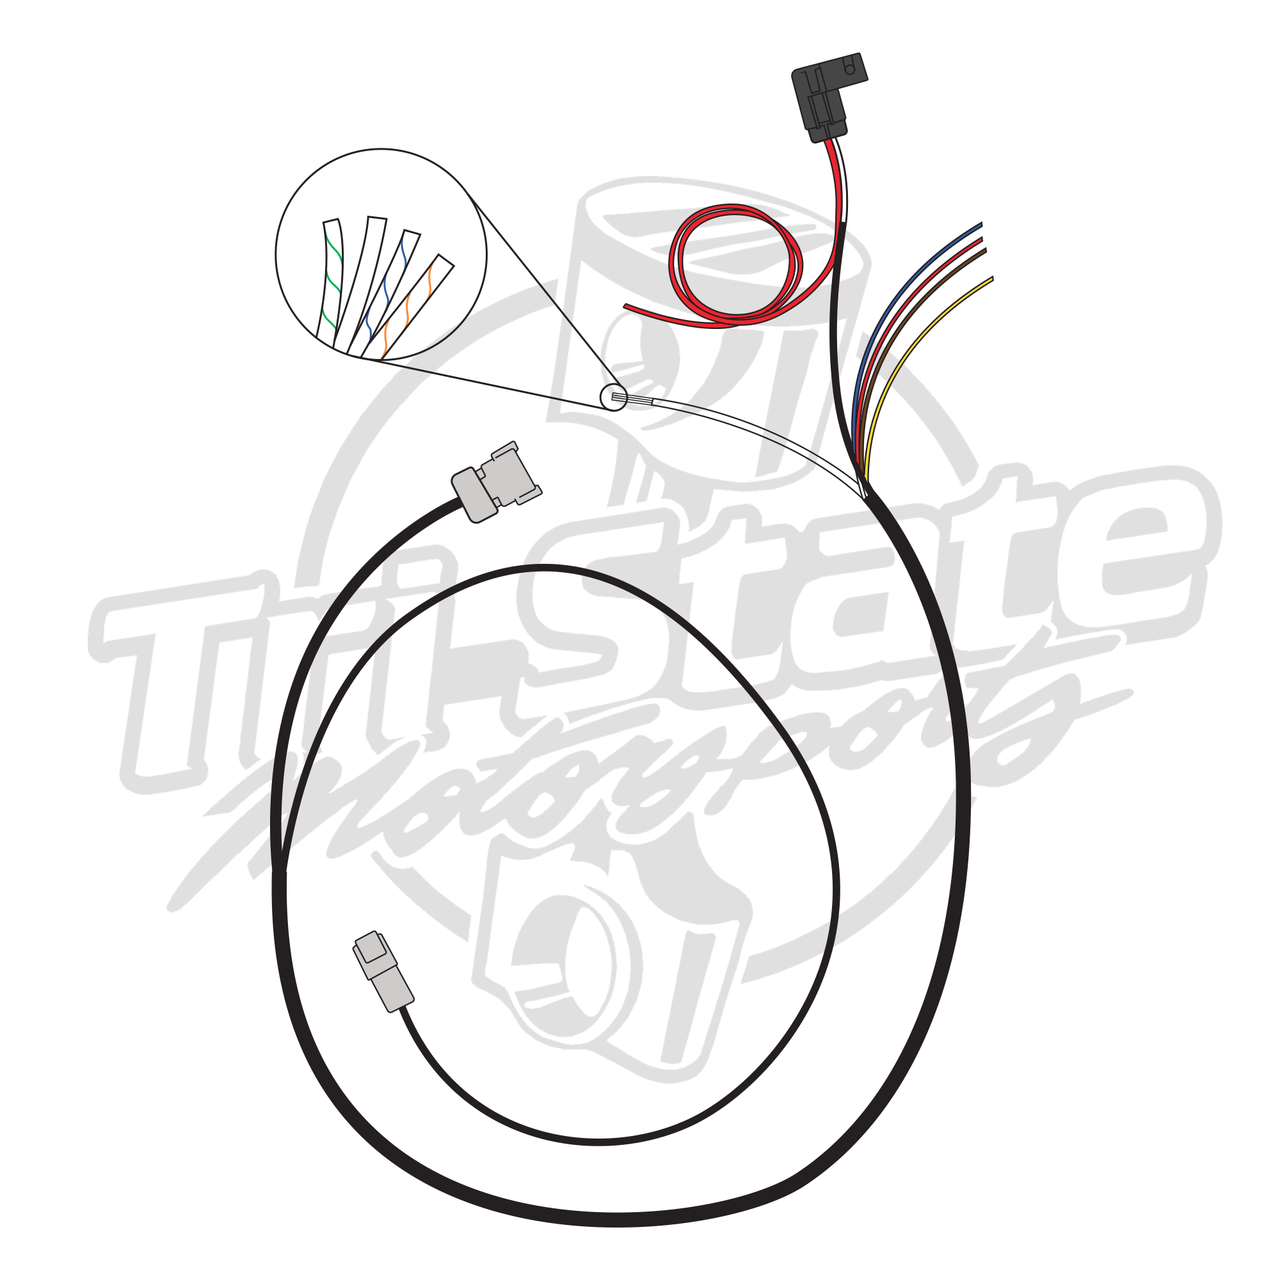 t1 wiring wiring diagram database USB 3.1 Pinout t1 cable wiring box wiring diagram t1 cable wiring t1 wiring